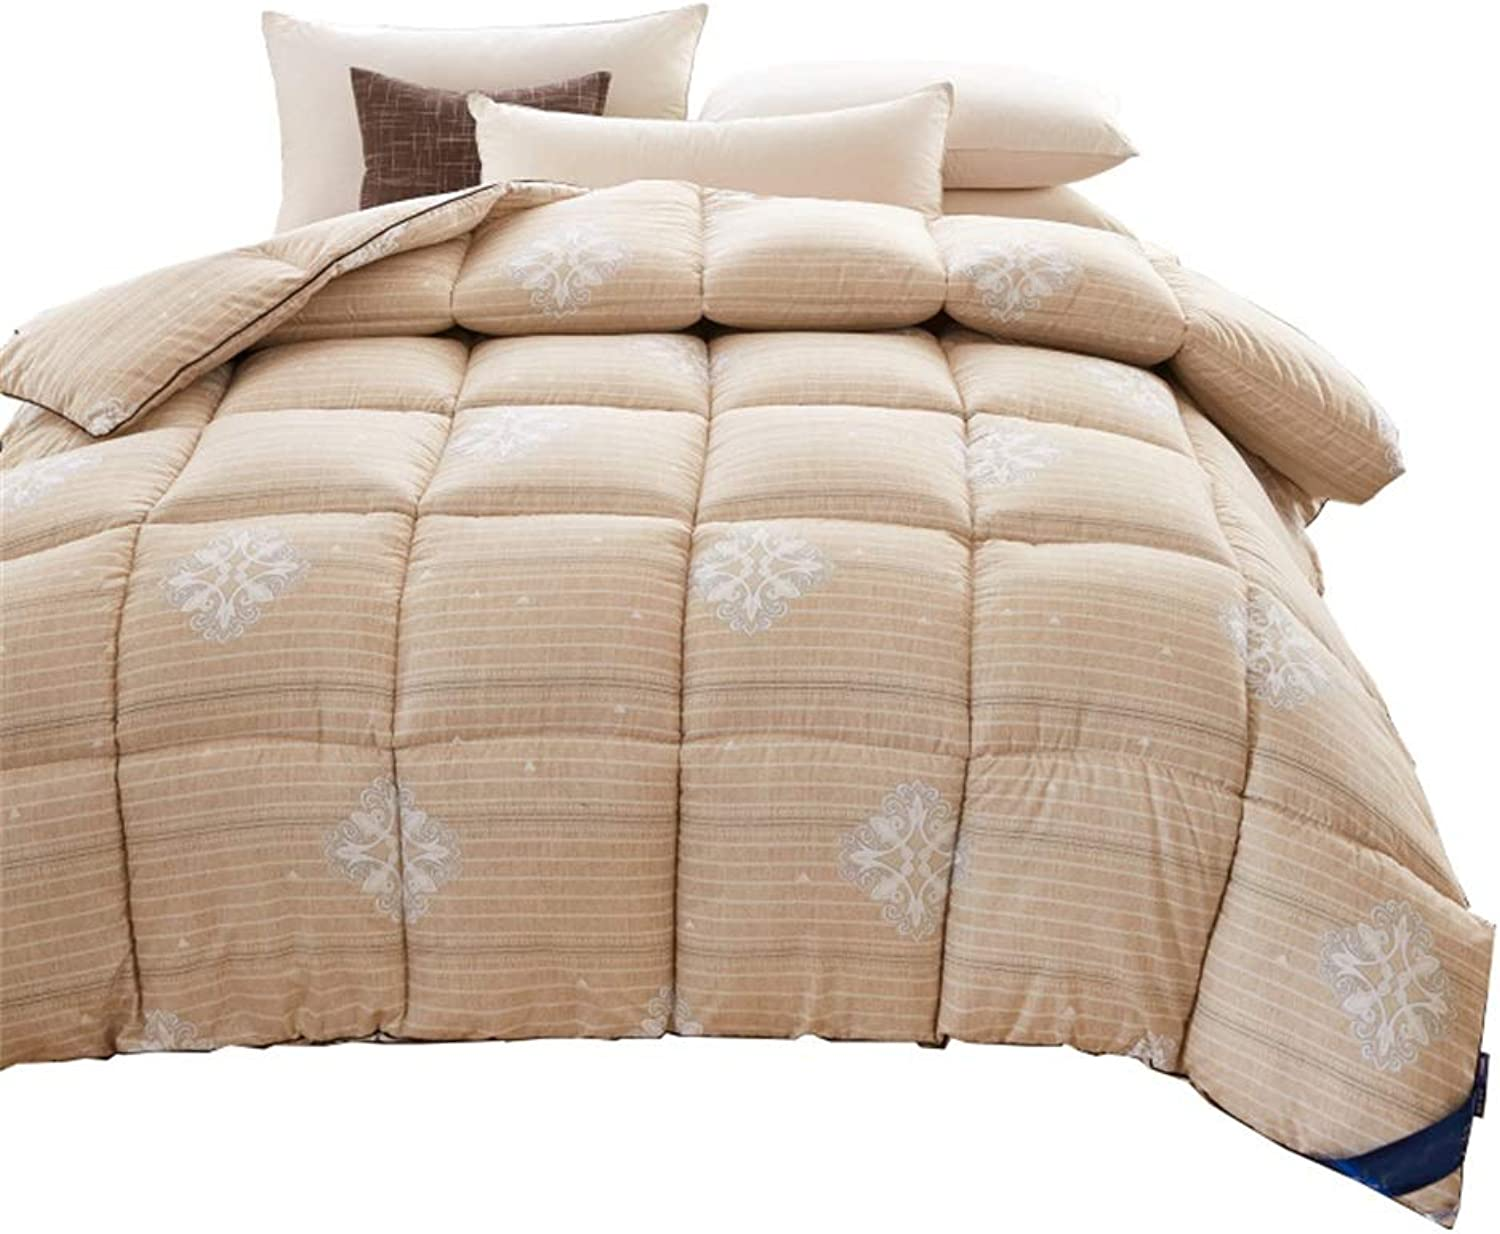 Quilt Khaki Thicken Warm and Soft for All Season All-Season Quilted Comforte Rhypoallergenic 100% Cotton Fabrics Quilted Comforter with Corner Tabs (Size   180cmx220cm3kg)